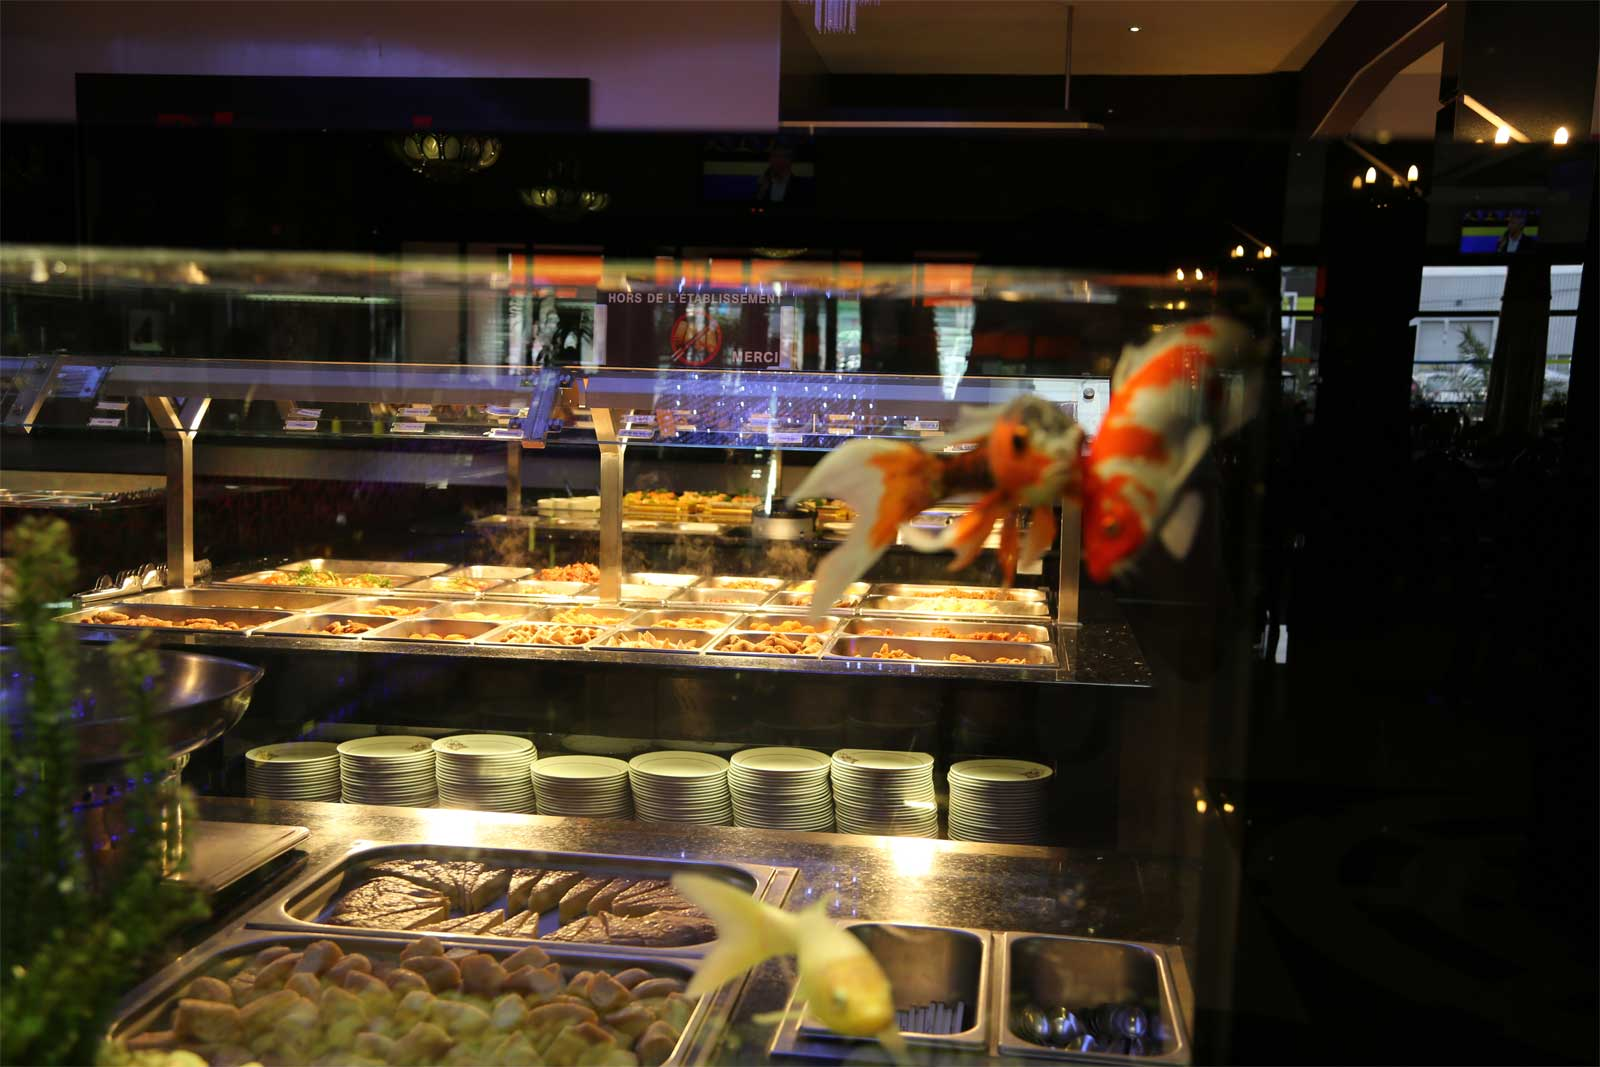 royal-buffet-restaurant-toulouse-avenue-des-etats-unis-buffet